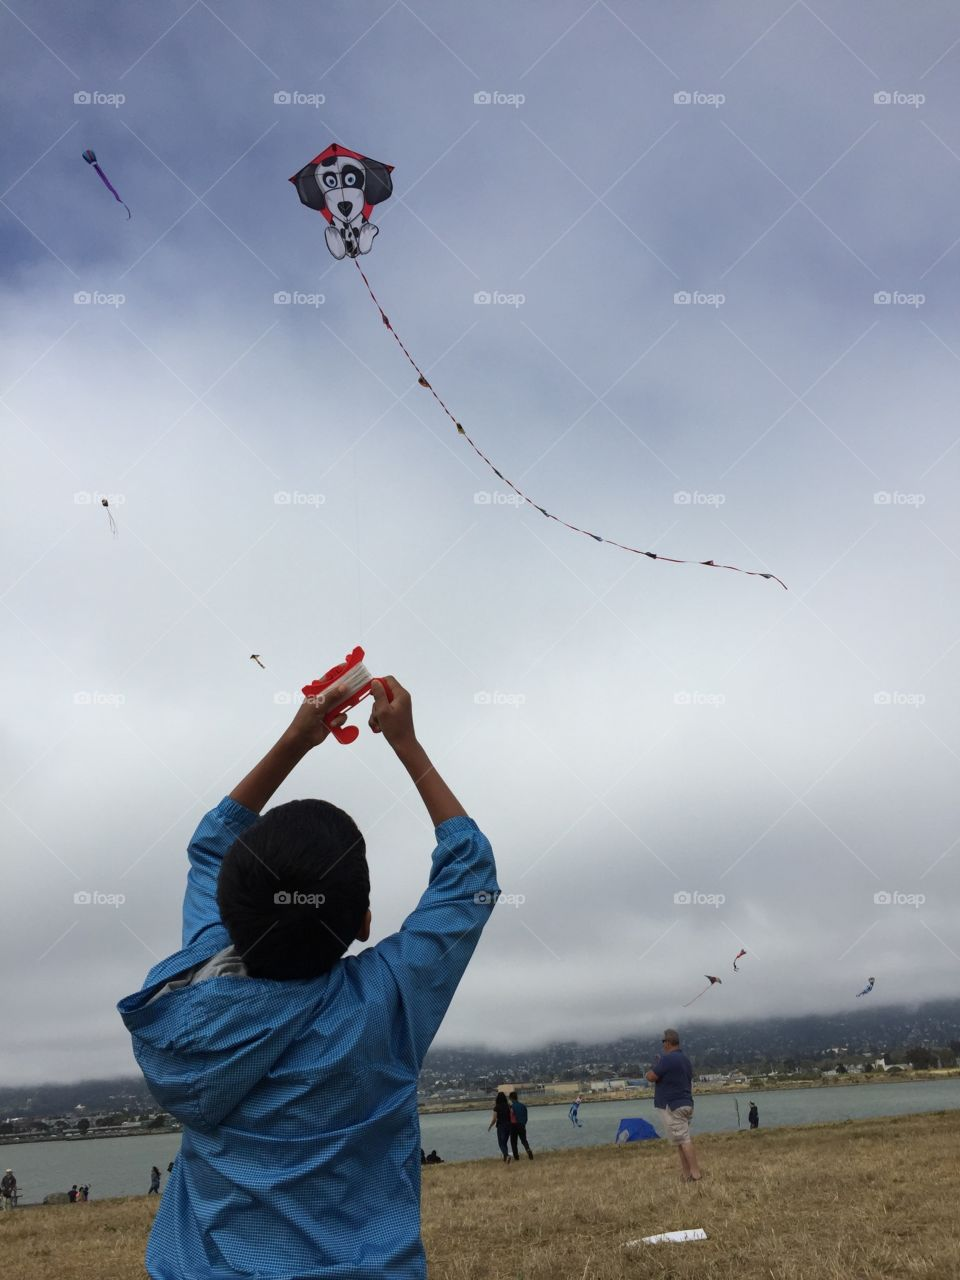 Kid flying kite on a breezy day